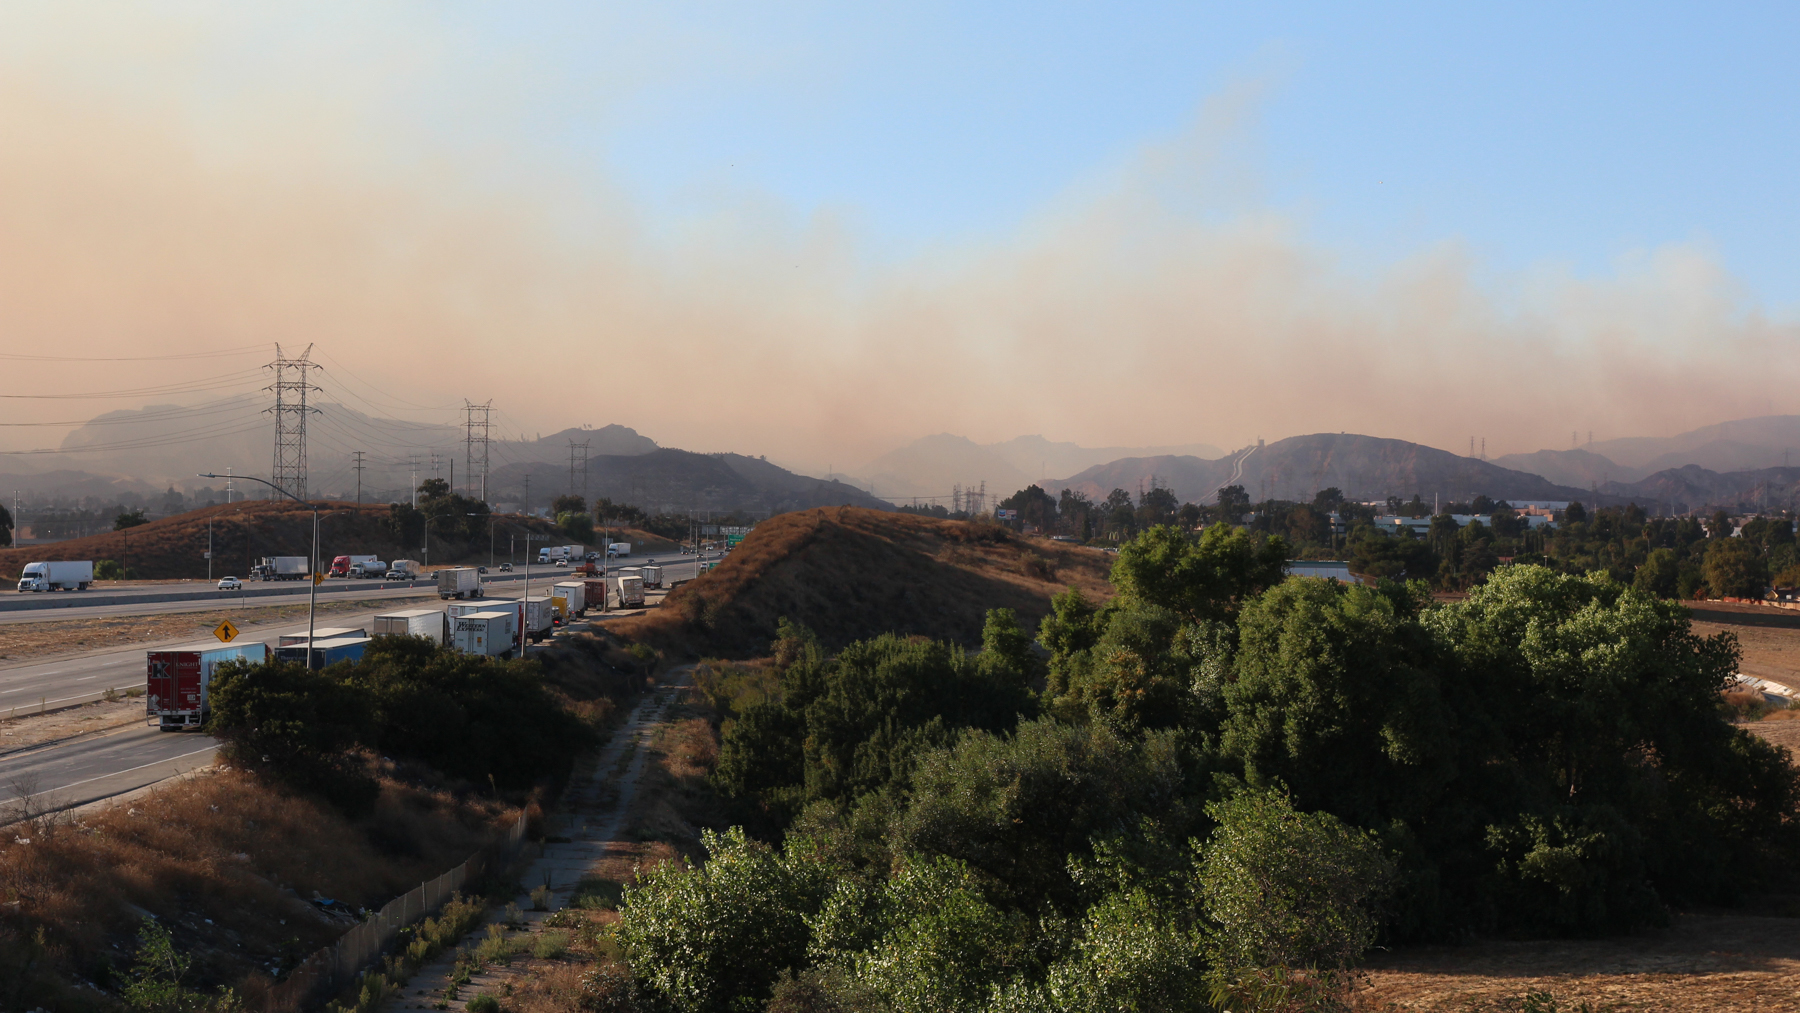 Smoke from the Saddleridge Fire crosses the I-5 Freeway in the San Fernando Valley last week. (Noah Smith / Direct Relief)(Noah Smith/DIrectRelief)